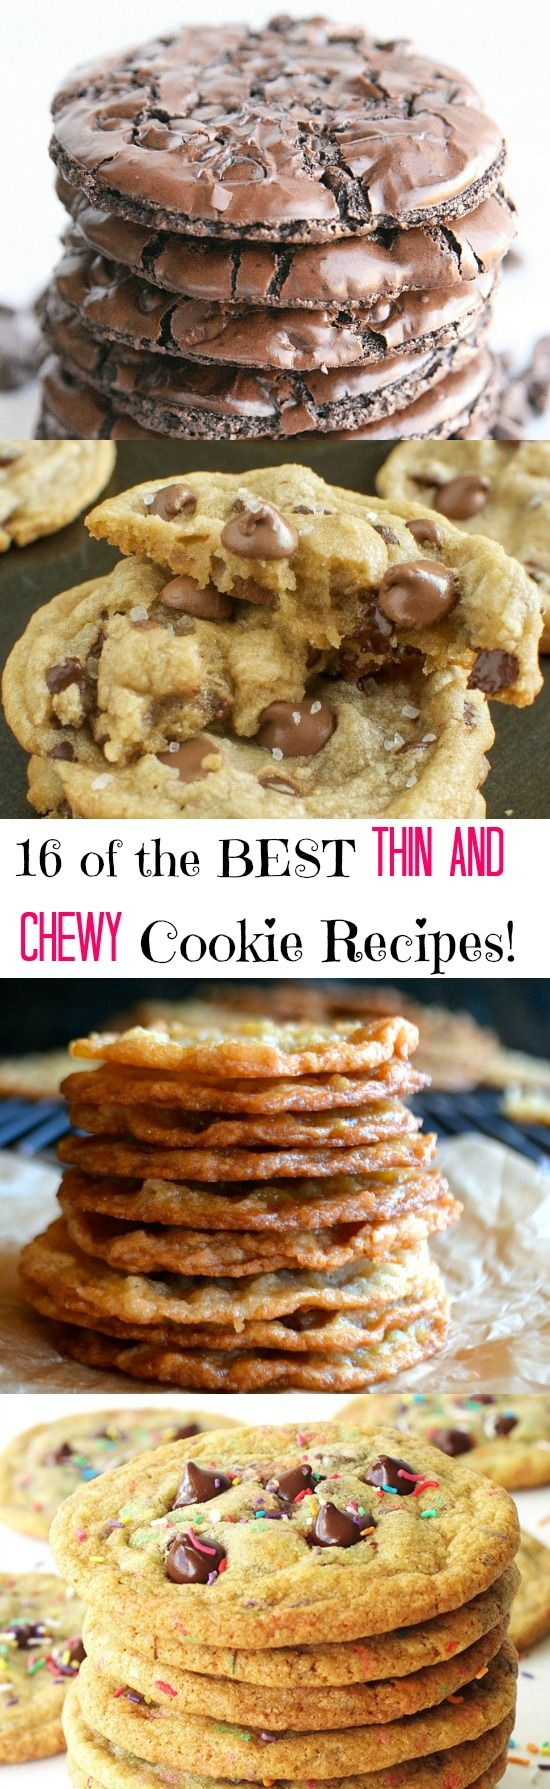 The Best Thin and Chewy Cookies for Your Cookie Jar!!